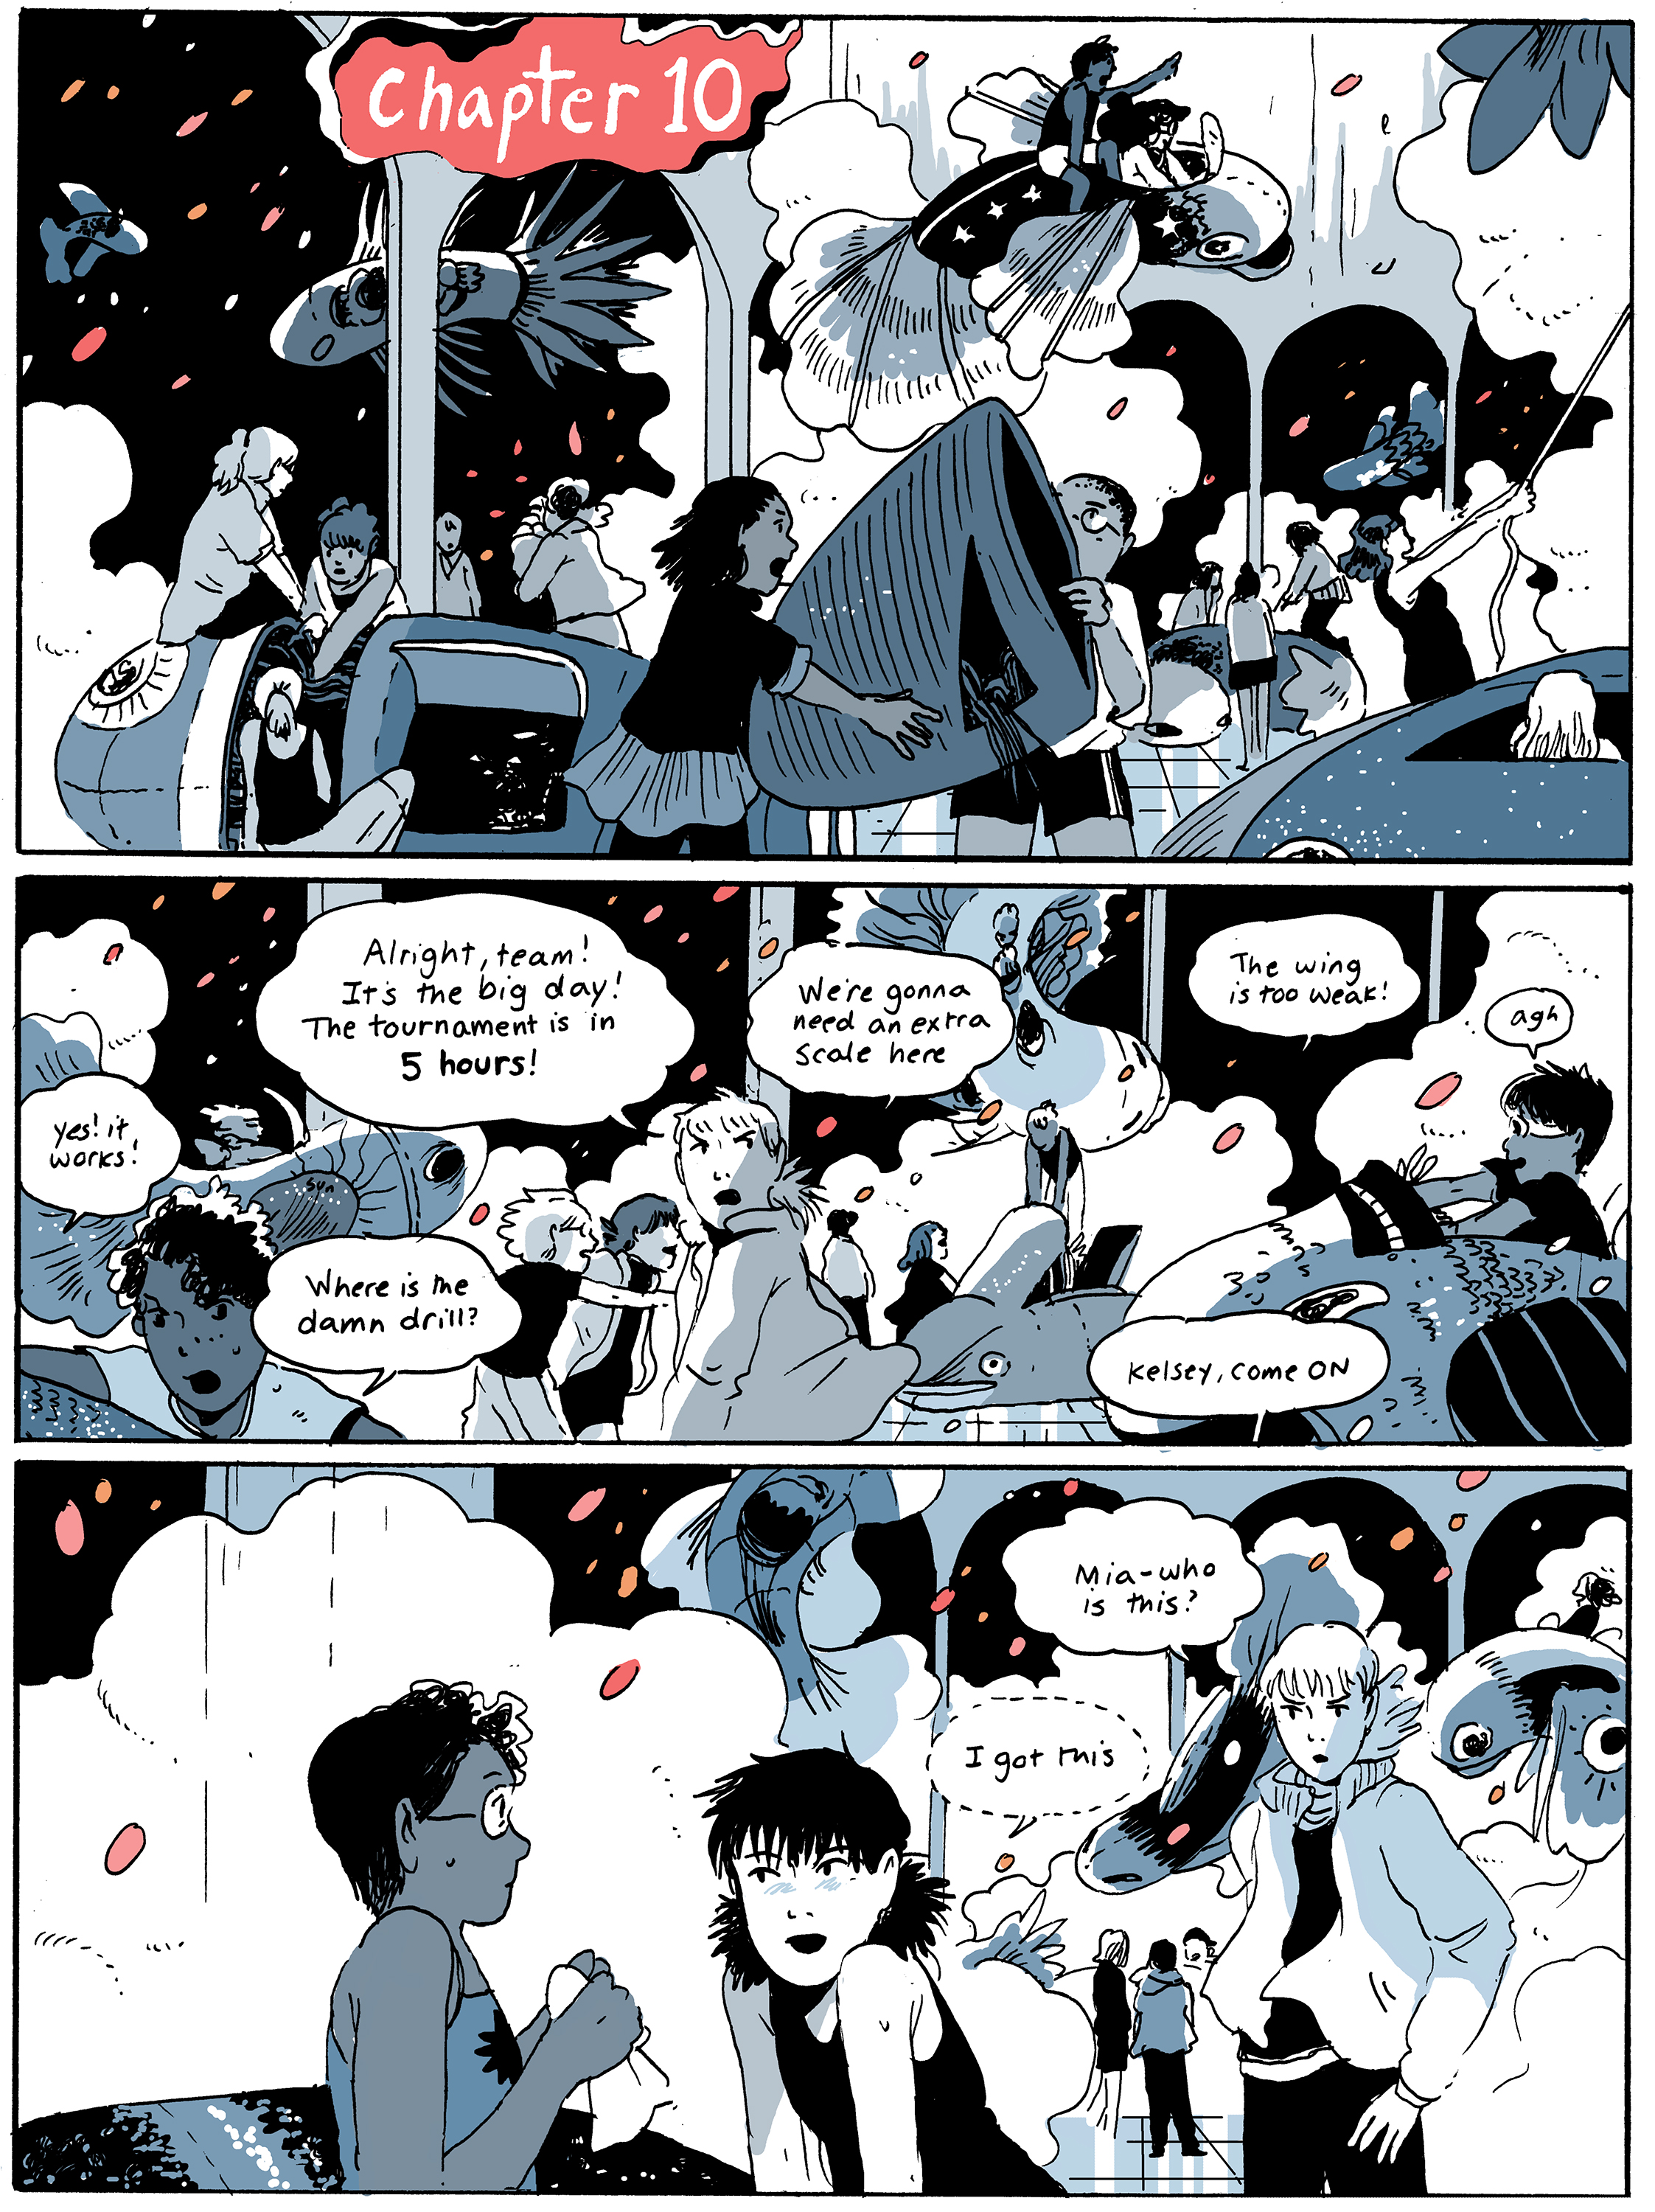 chapter10_page01.jpg